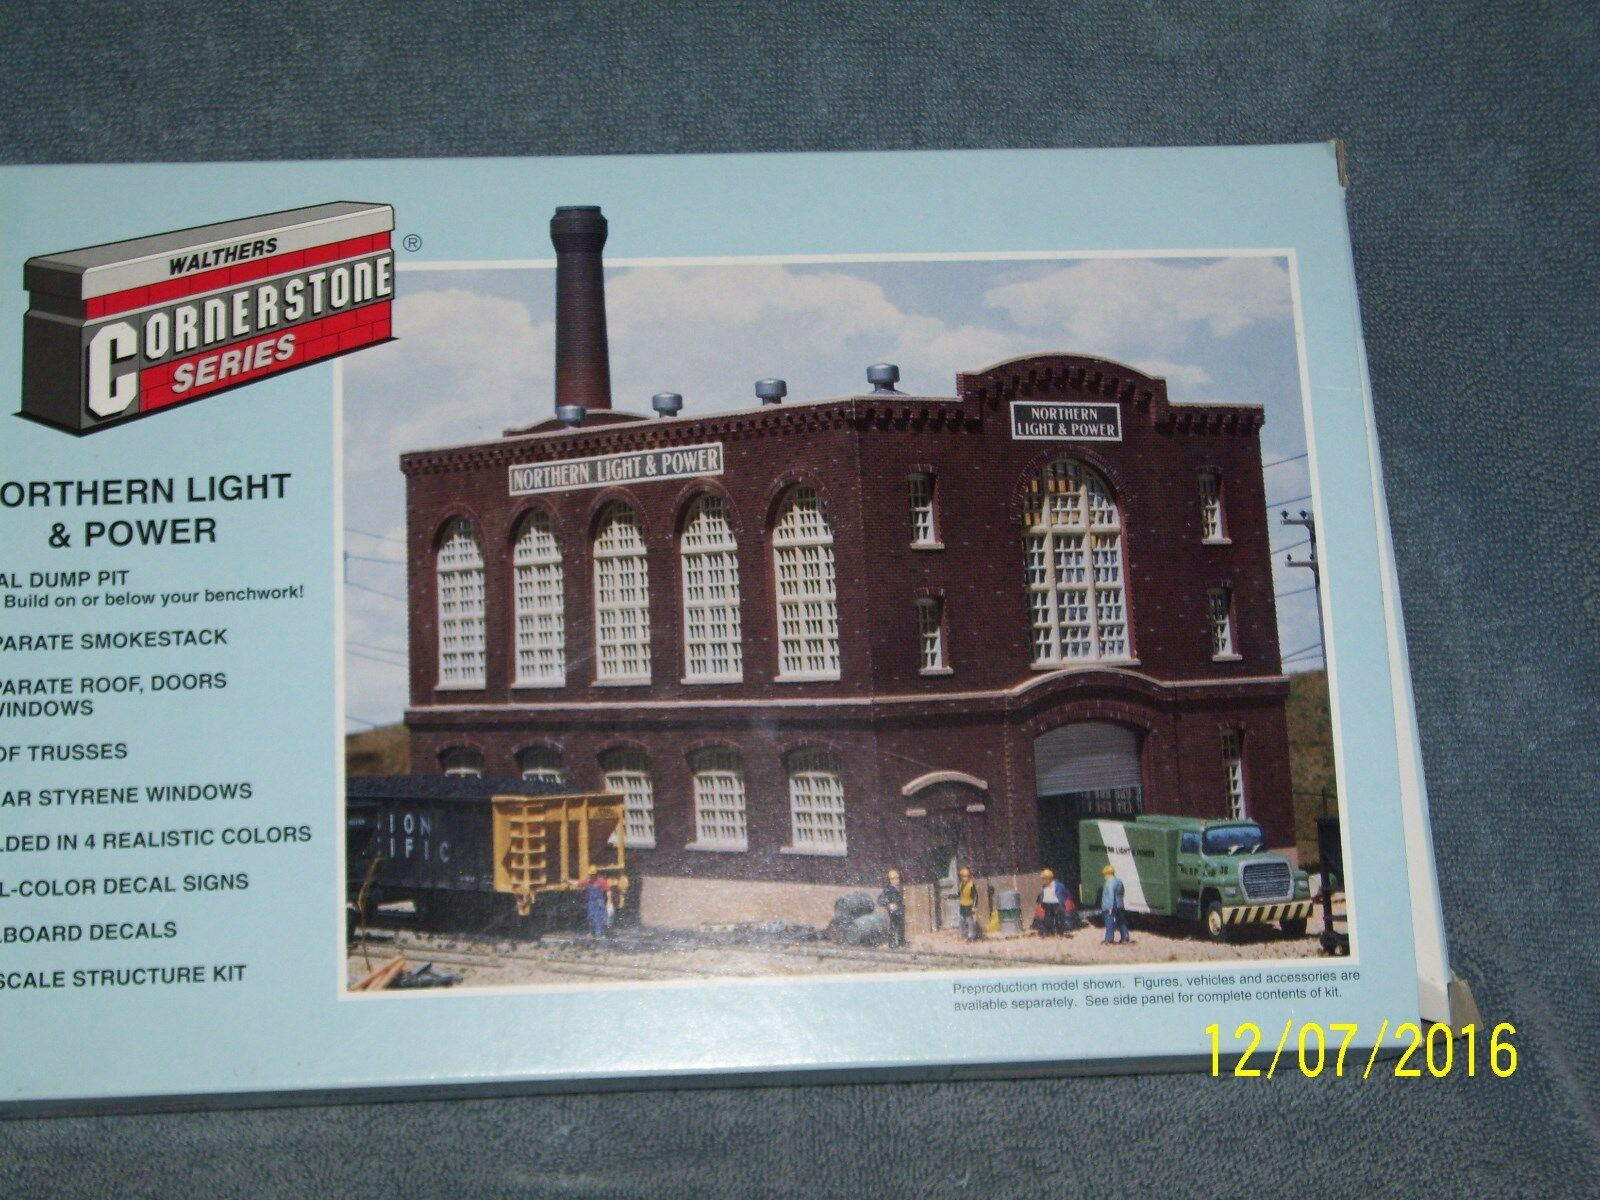 WALTHERS CORNERSTONE SERIES HO SCALE  933-3021 NORTHERN POWER AND LIGHT